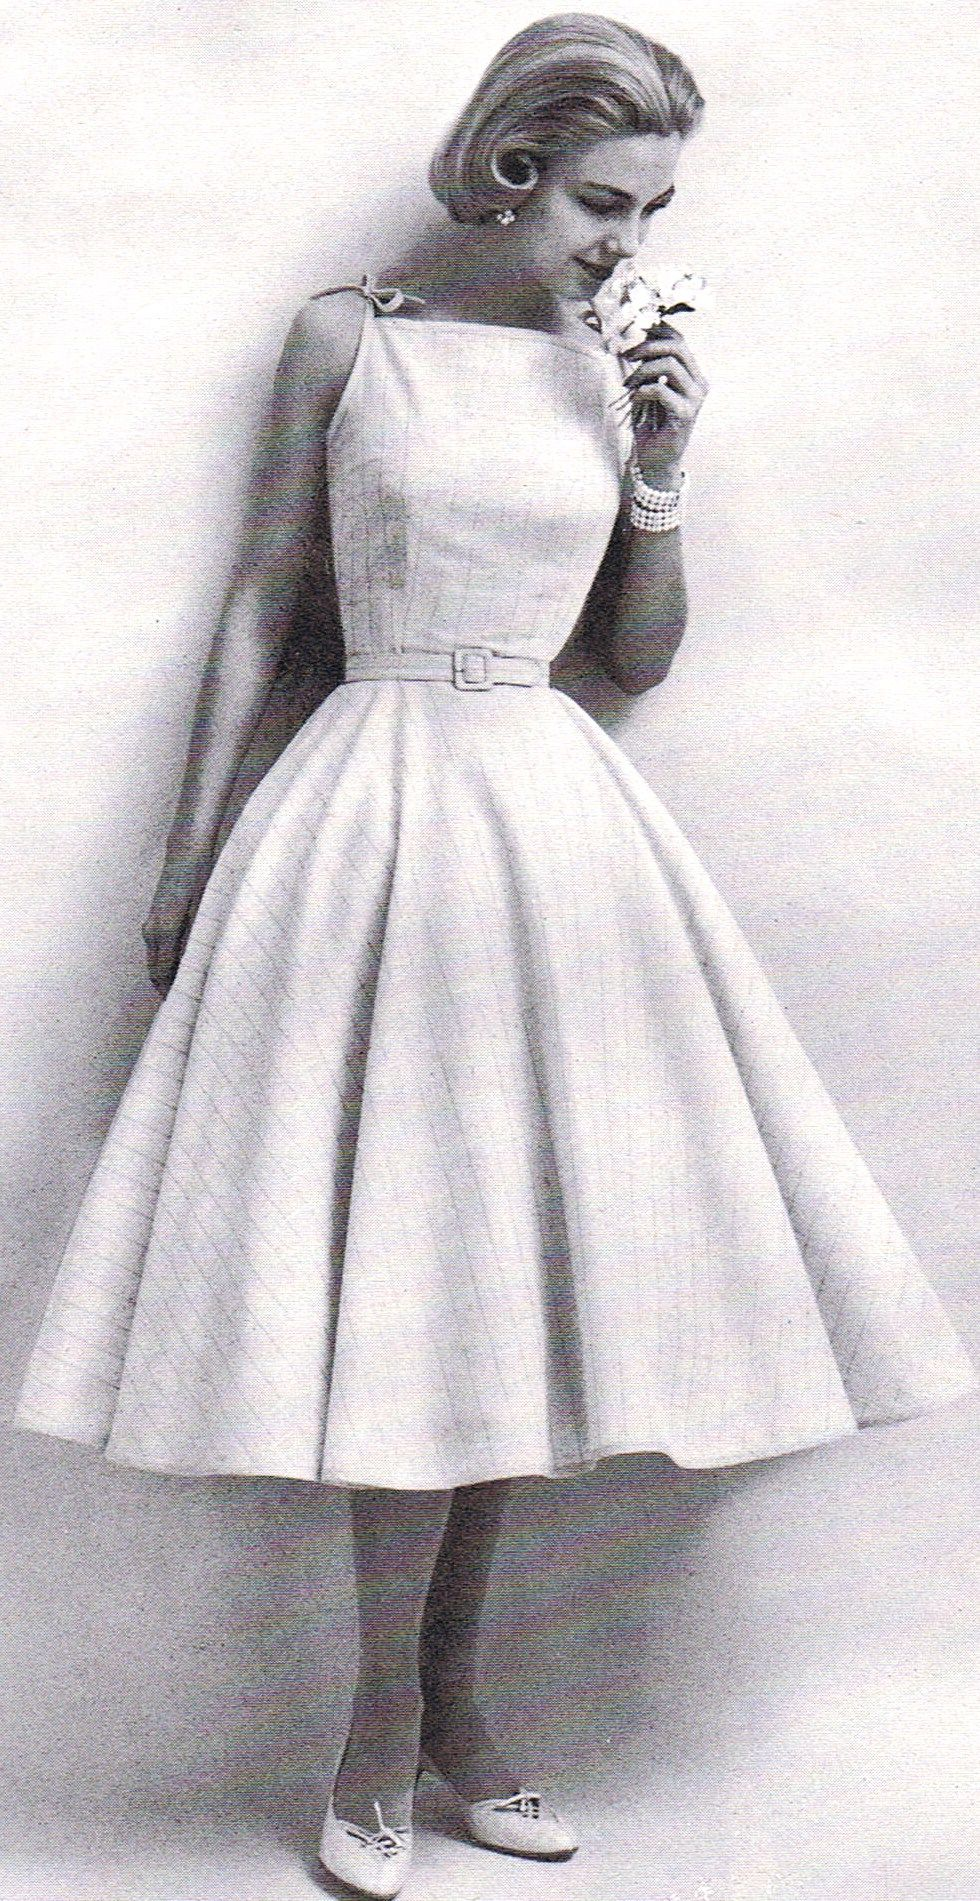 vintage clothing is so beautiful and this dress from the 1950s is